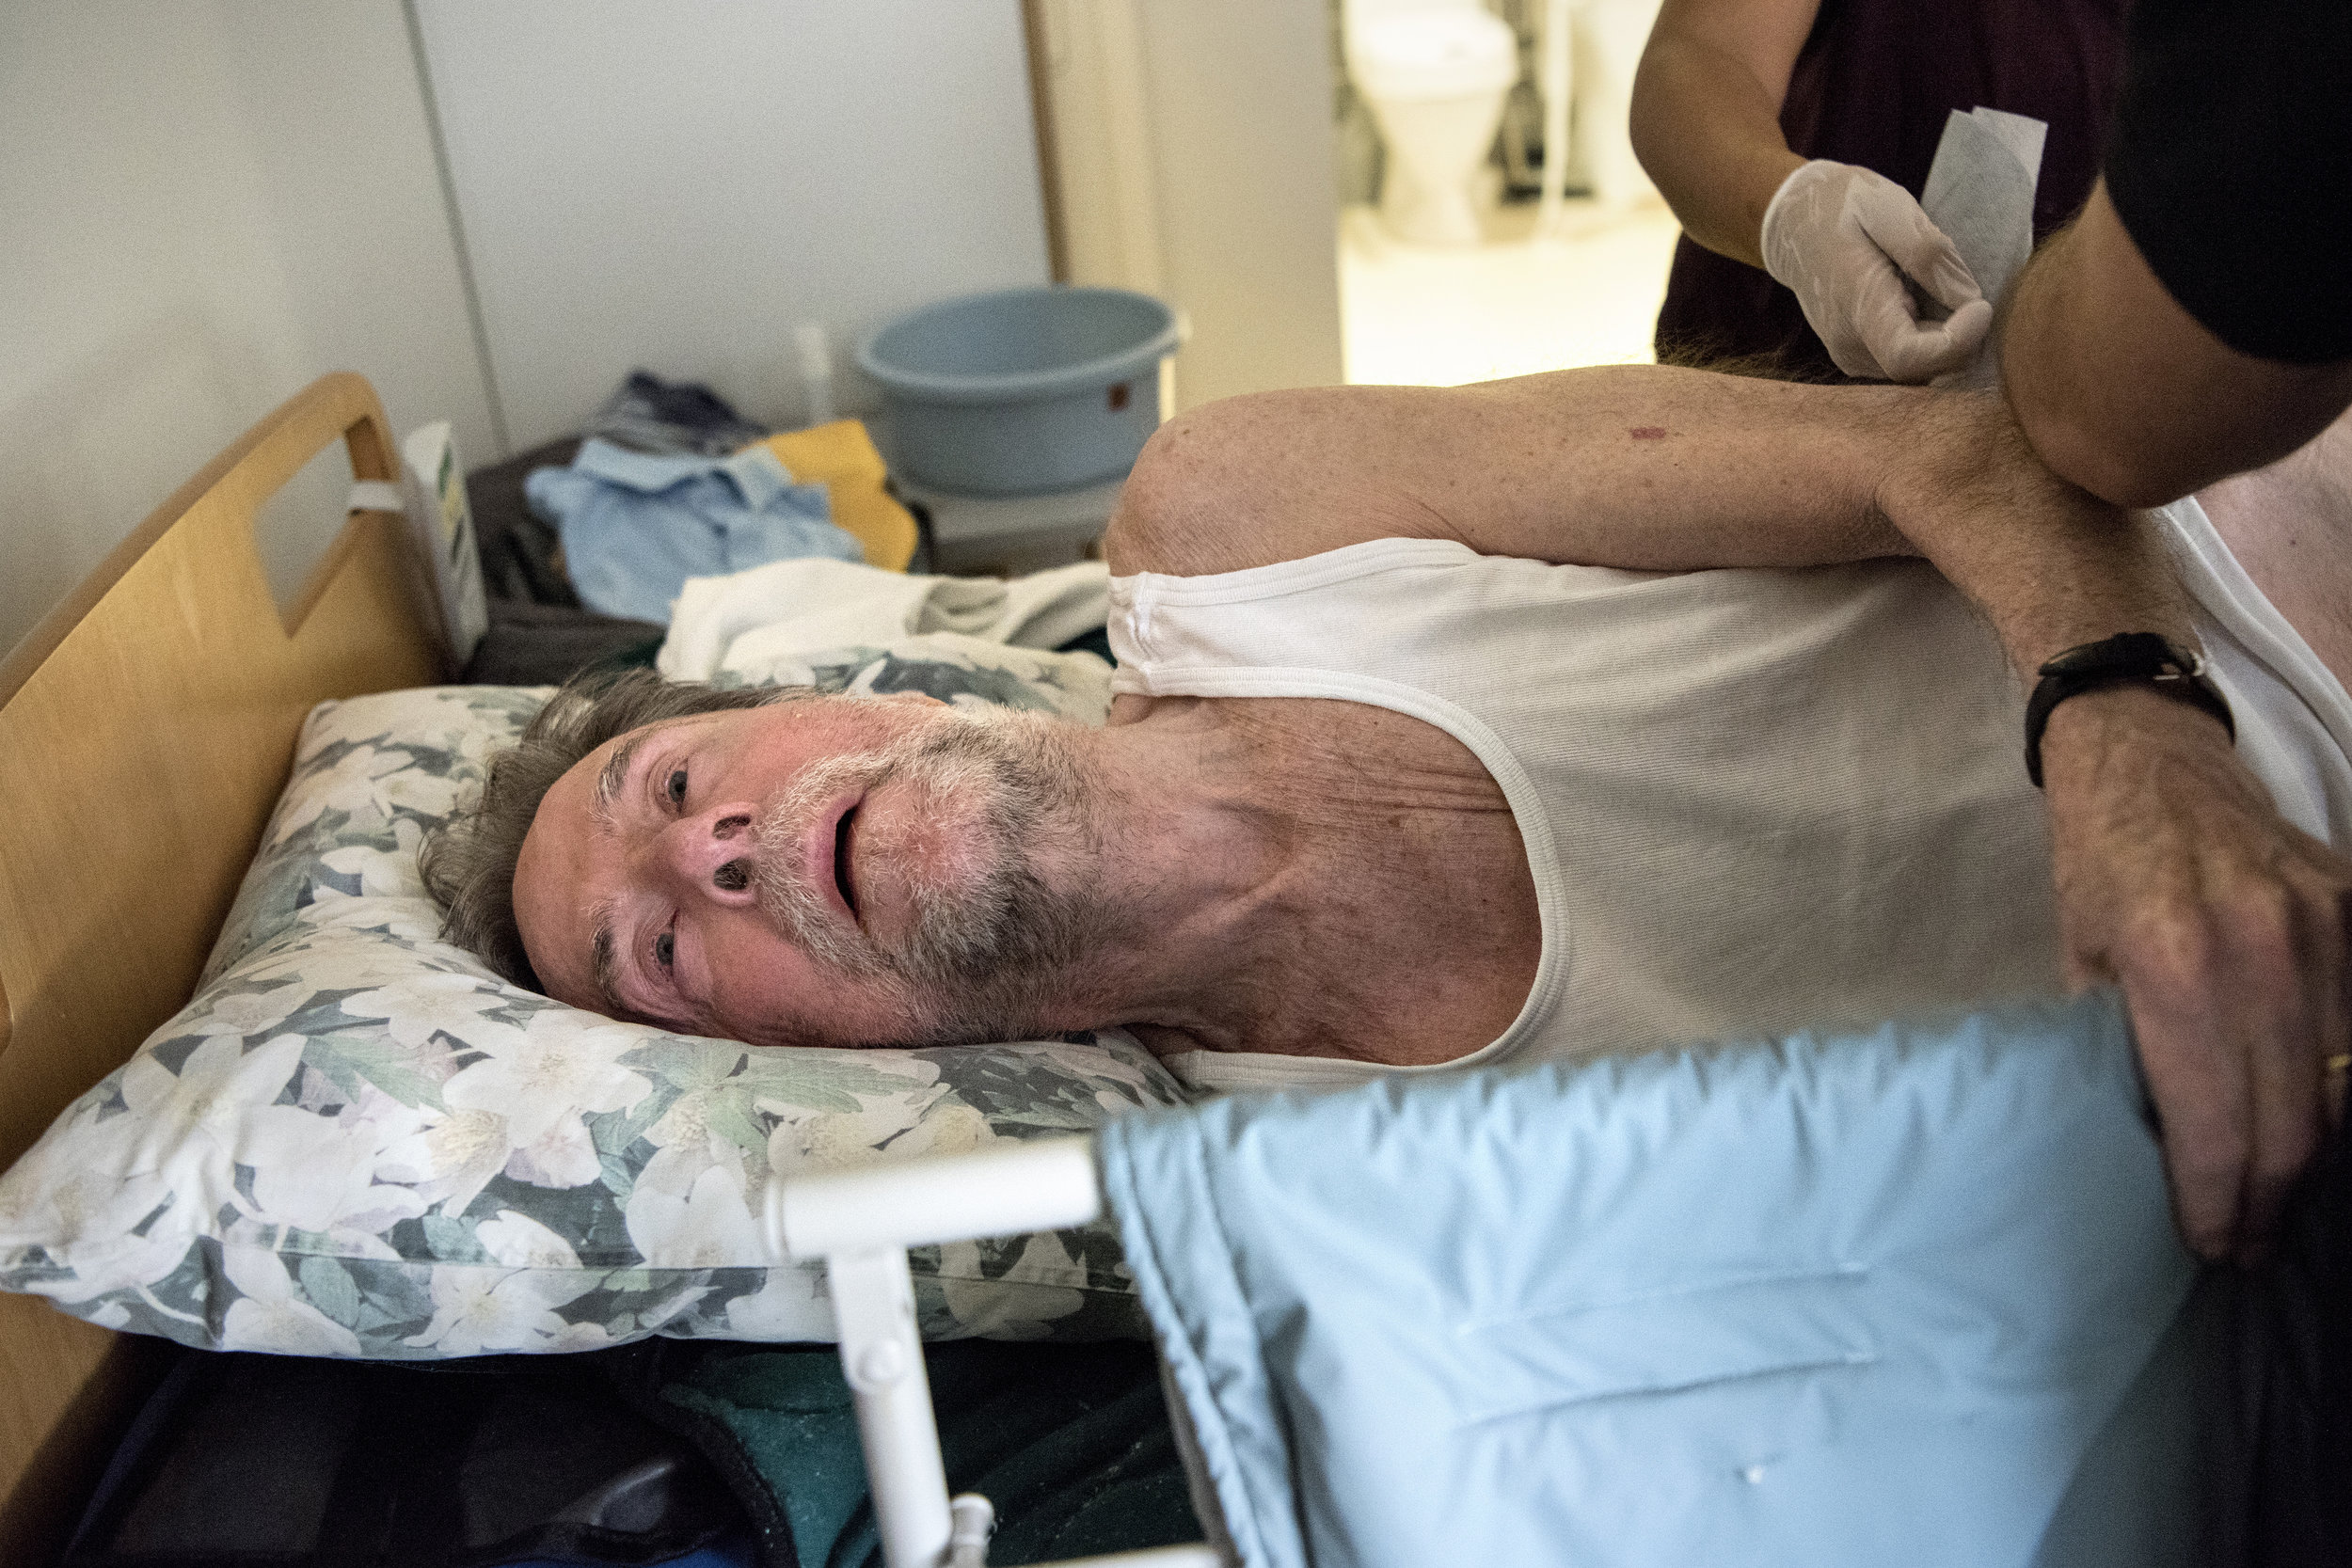 At the nursing home they had a voucher system so the patients could get a bath once a week. At this point Poul was too sick, so the morning routine was done while he was lying in bed.